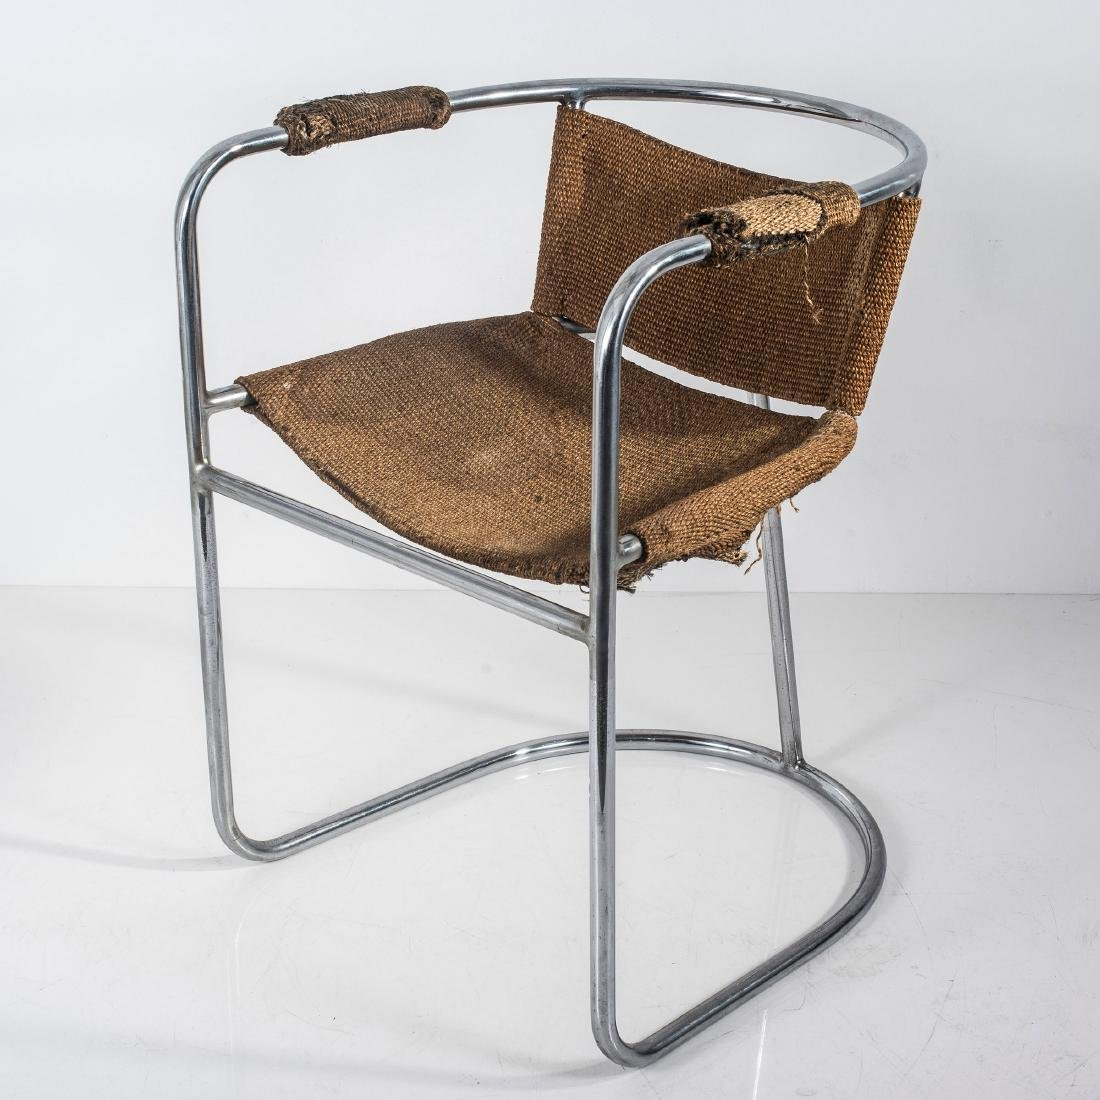 Tubular steel chair c. 1938 - 5